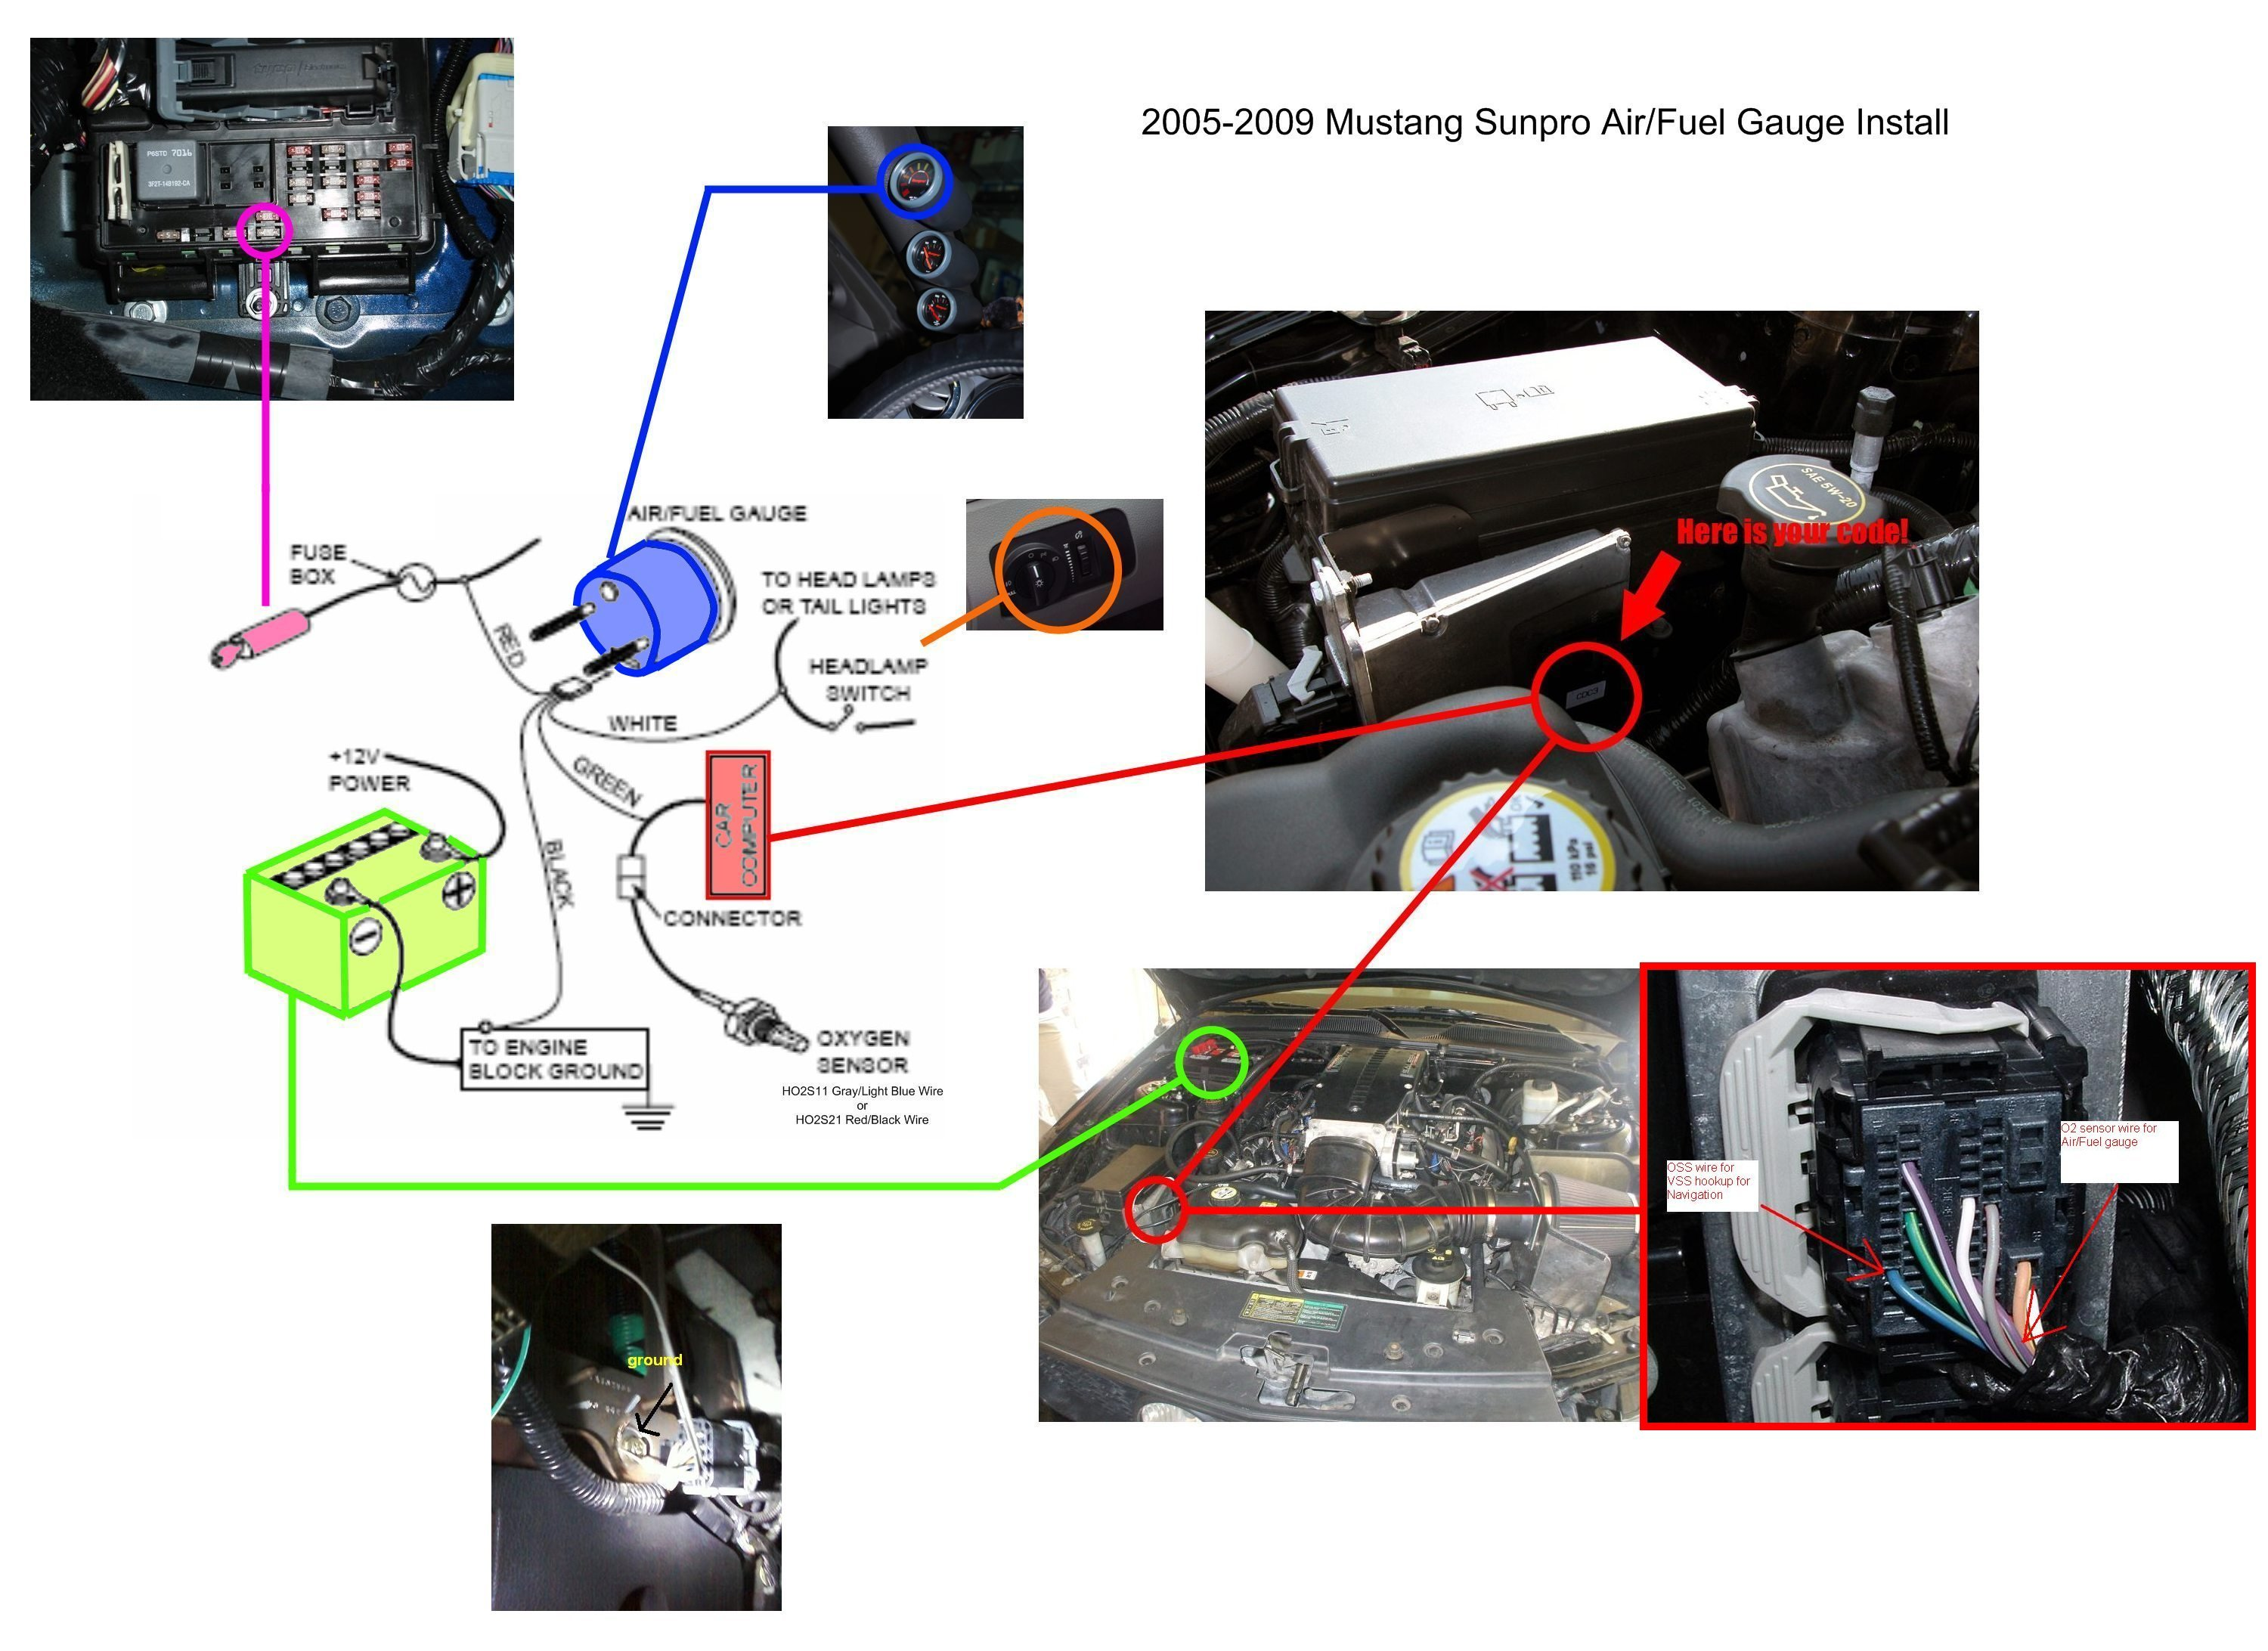 81950d1256410881 gauge install tech air fuel gauge gauge install tech ford mustang forum sunpro fuel gauge wiring diagram at bakdesigns.co